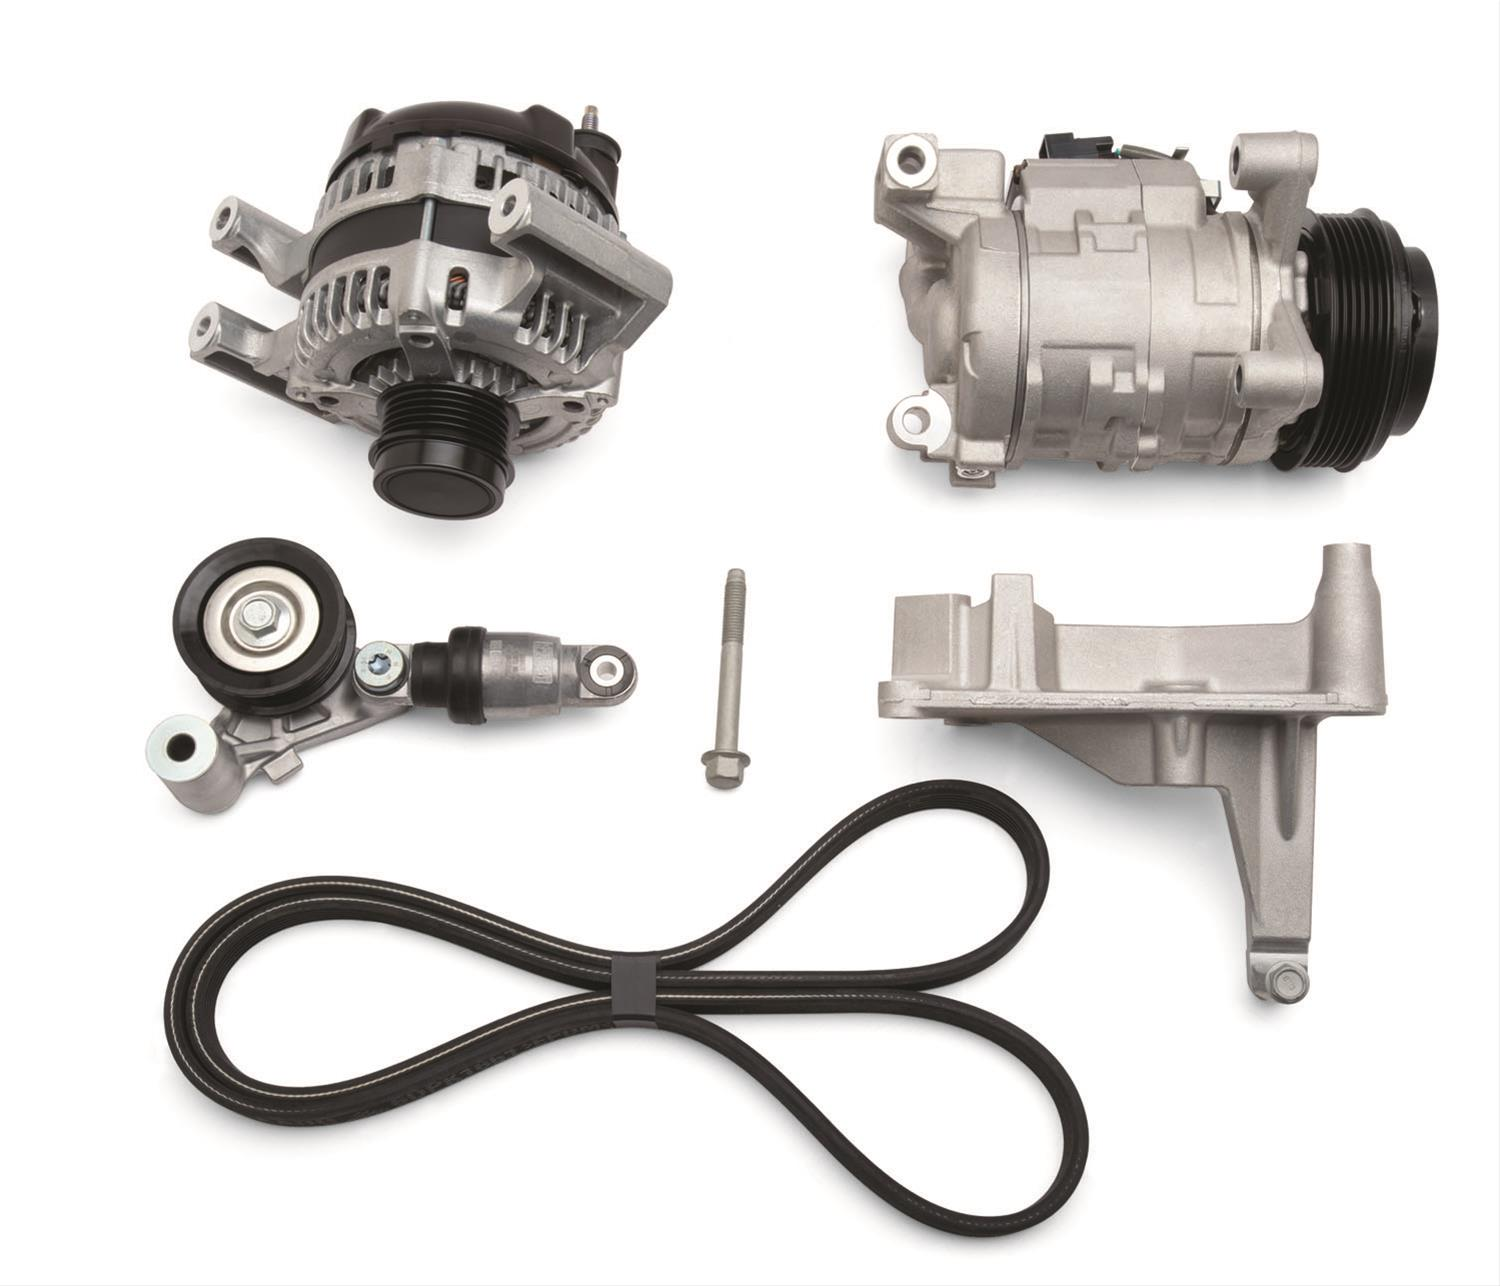 Accessories For Your Chevy Lt1: Chevrolet Performance Gen V LT1 Accessory Drive Systems